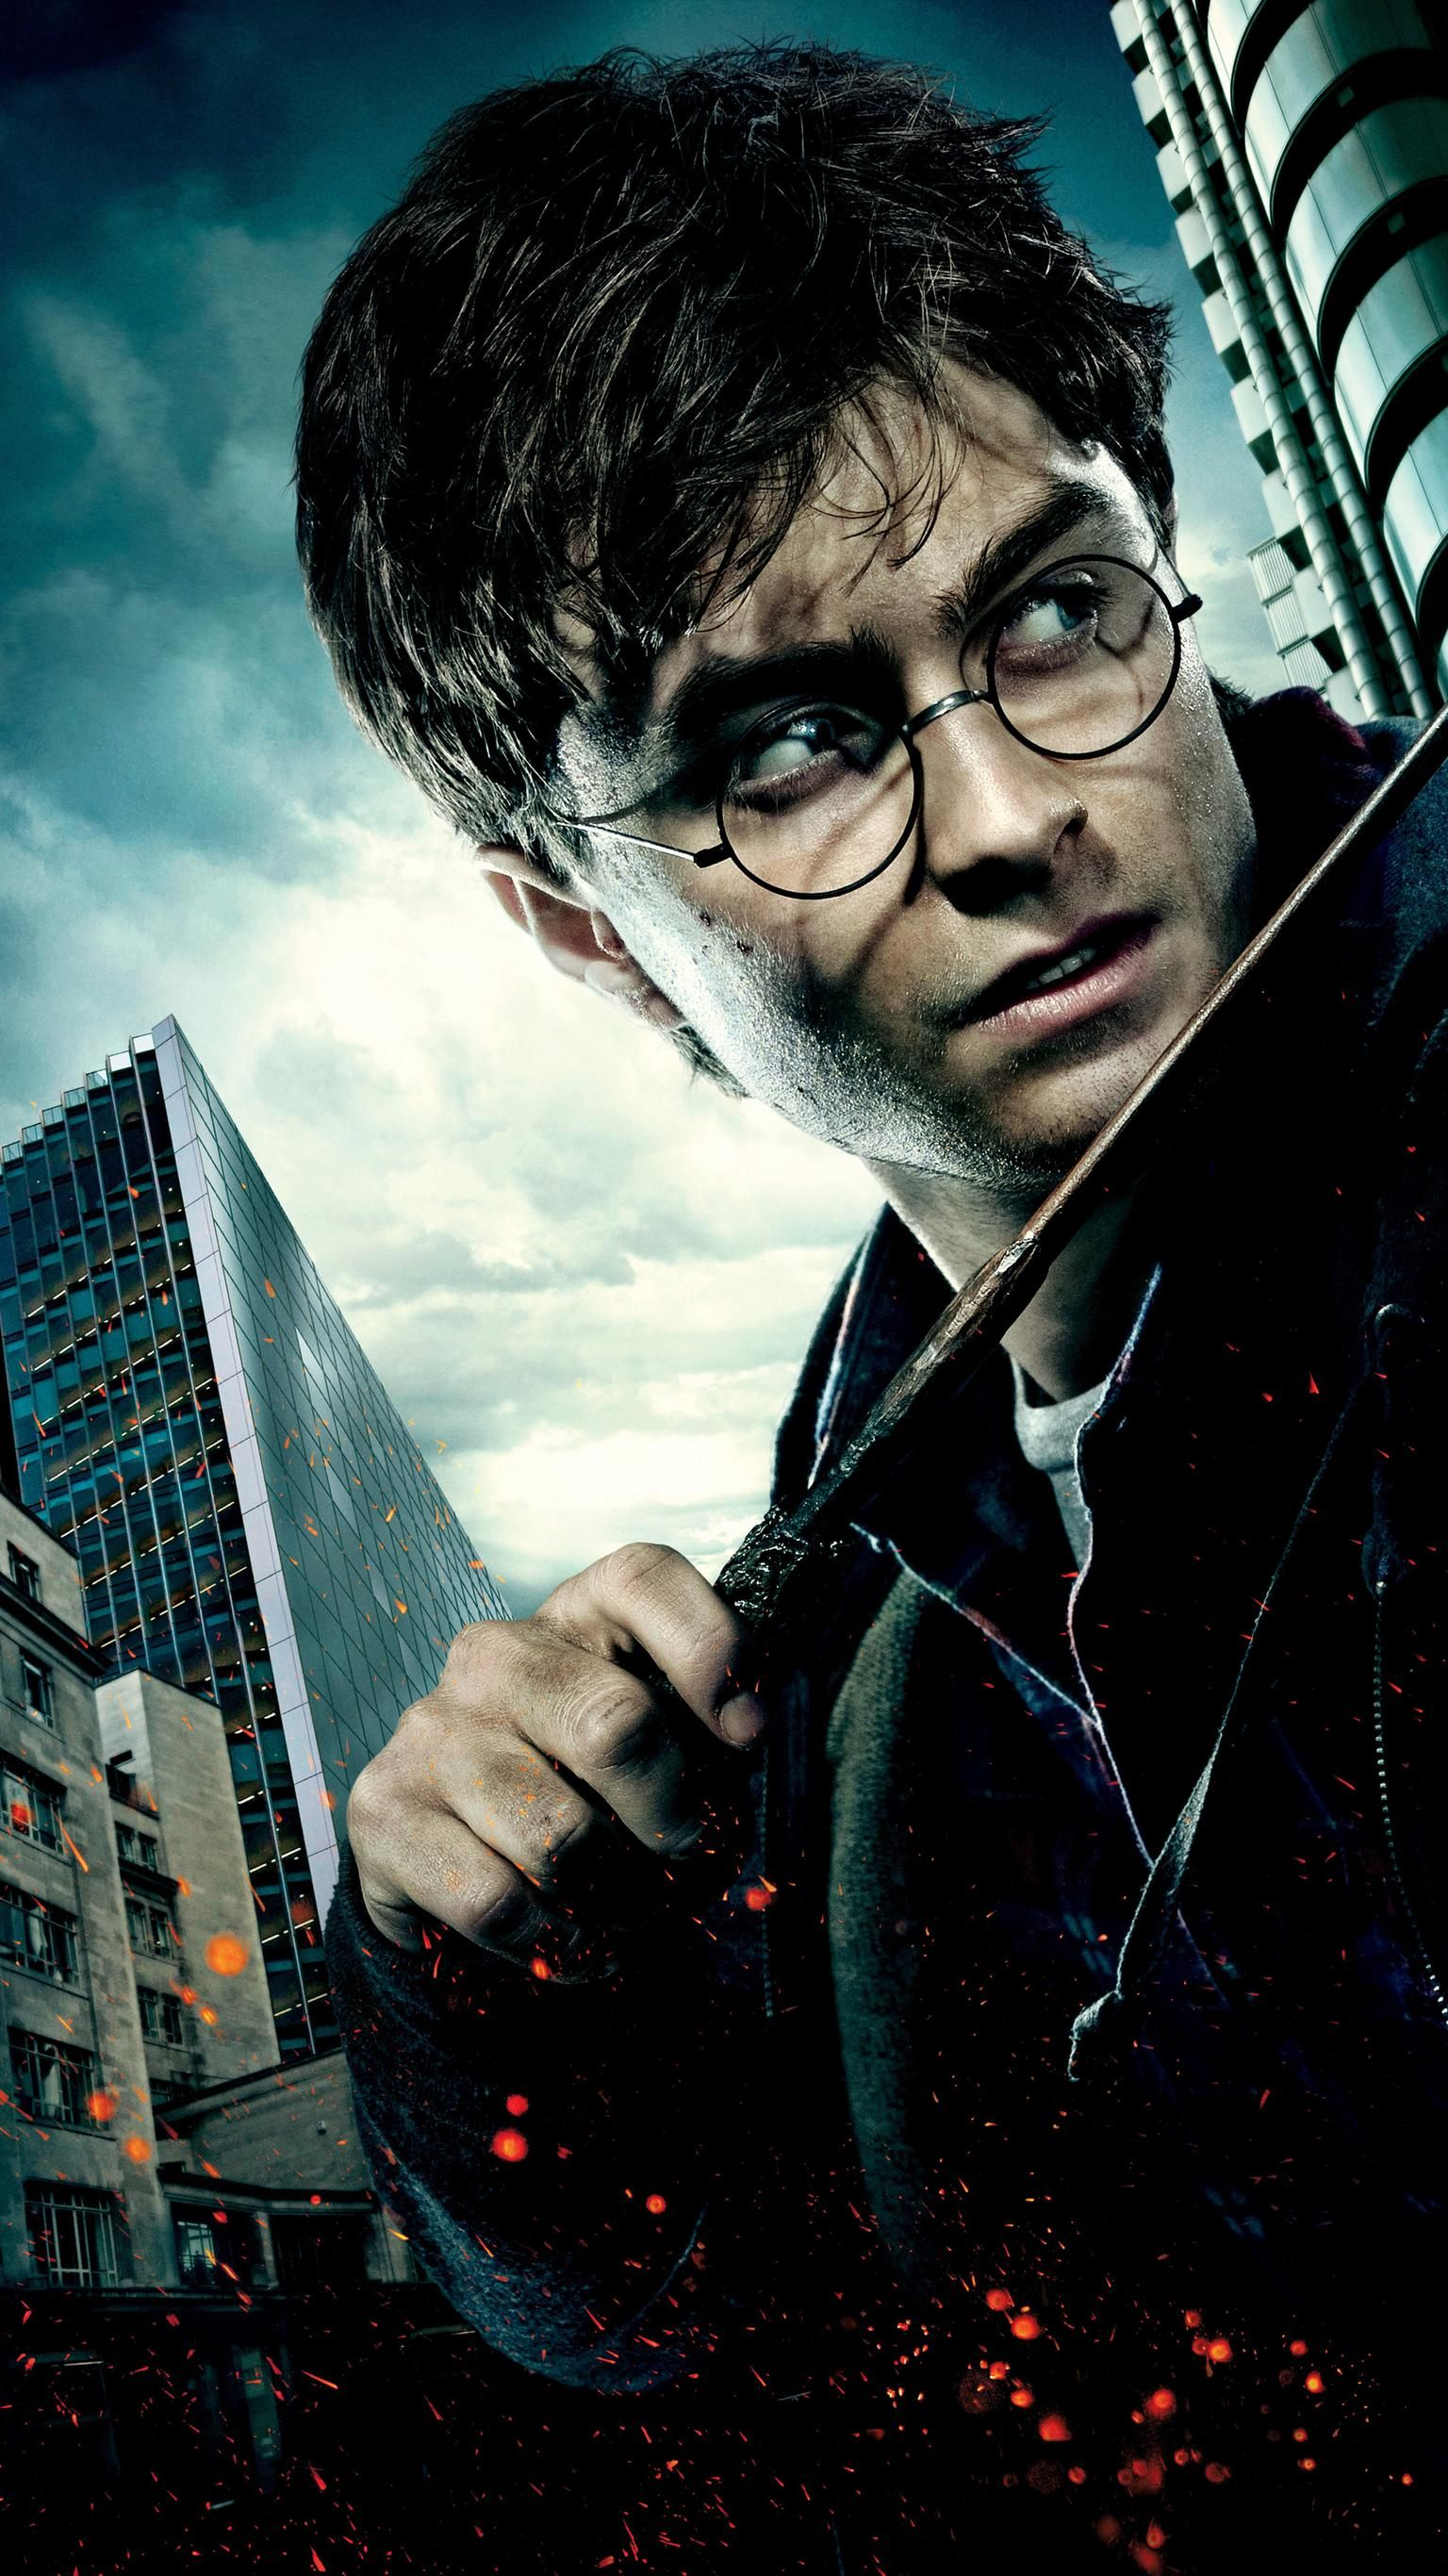 Harry Potter And The Deathly Hallows Part 1 2010 Phone Wallpaper Moviemania Harry Potter Wizard Harry Potter Movie Posters Deathly Hallows Part 1